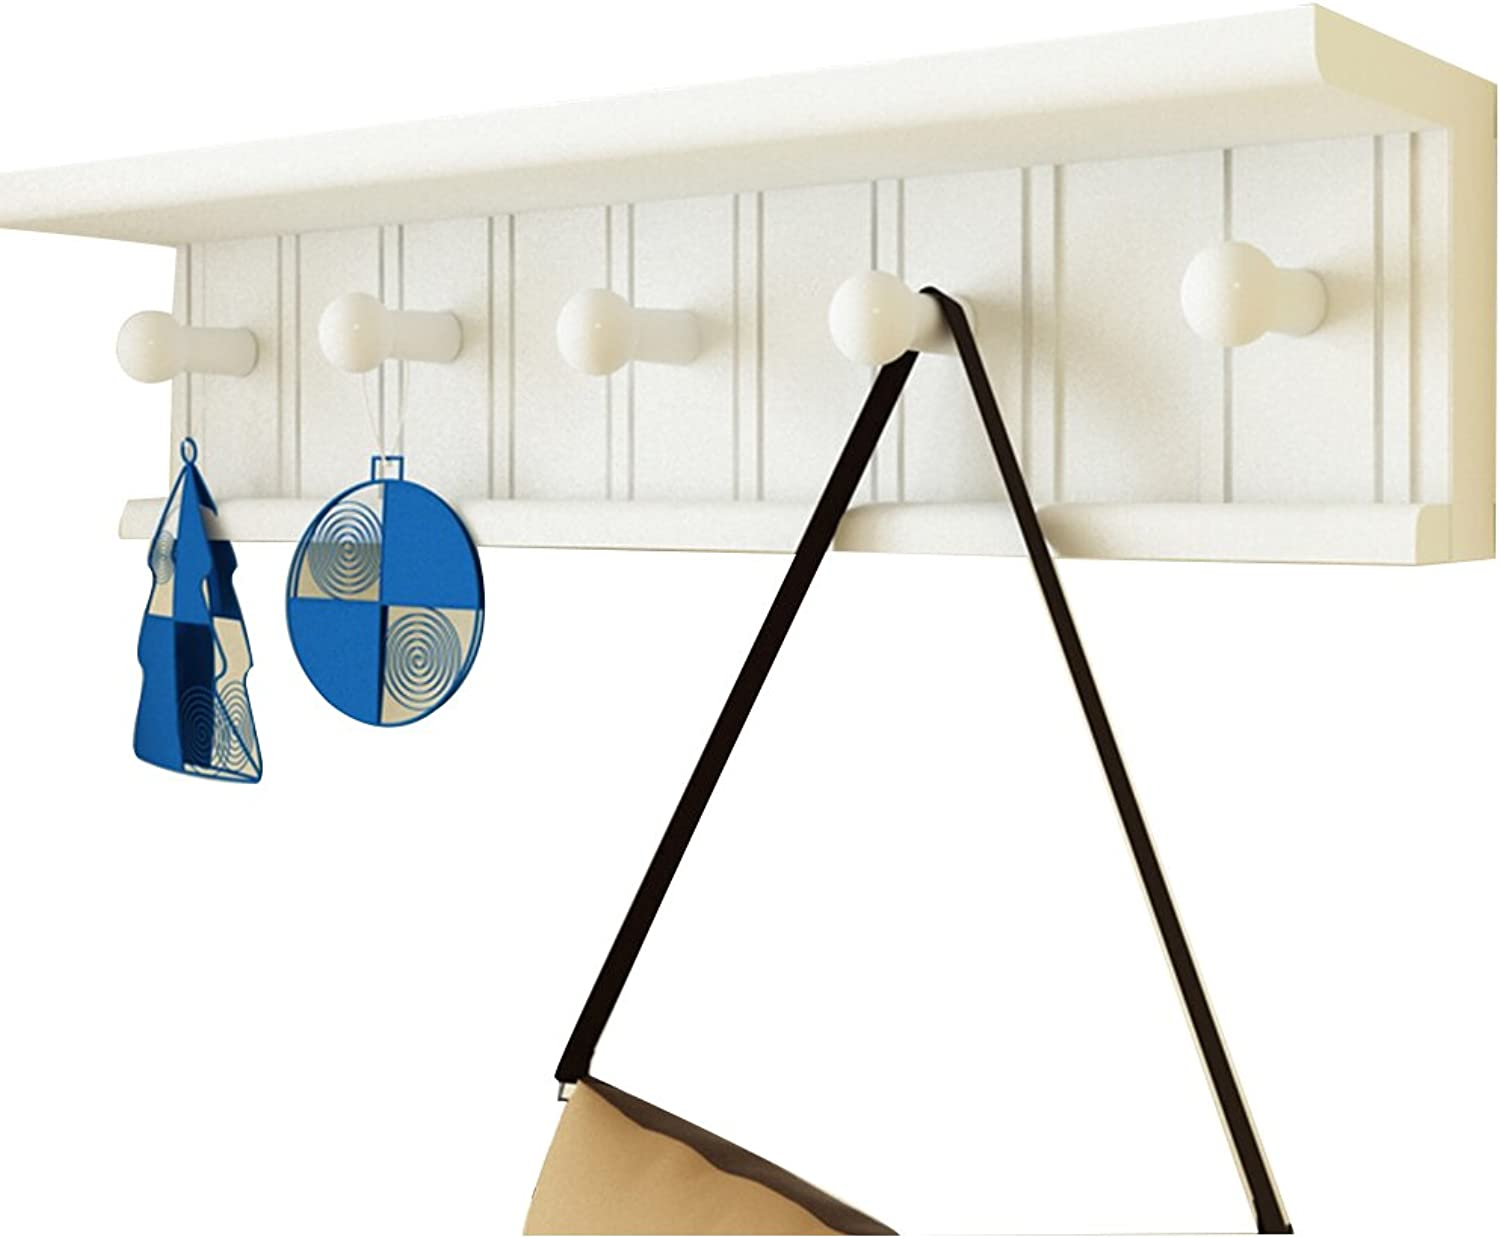 QIANGDA Wall Mounted Coat Rack Wooden Multifunction Clothes Hanging Hook On The Wall, 5 7 Hooks Optional (Size   60 x 16.5cm)